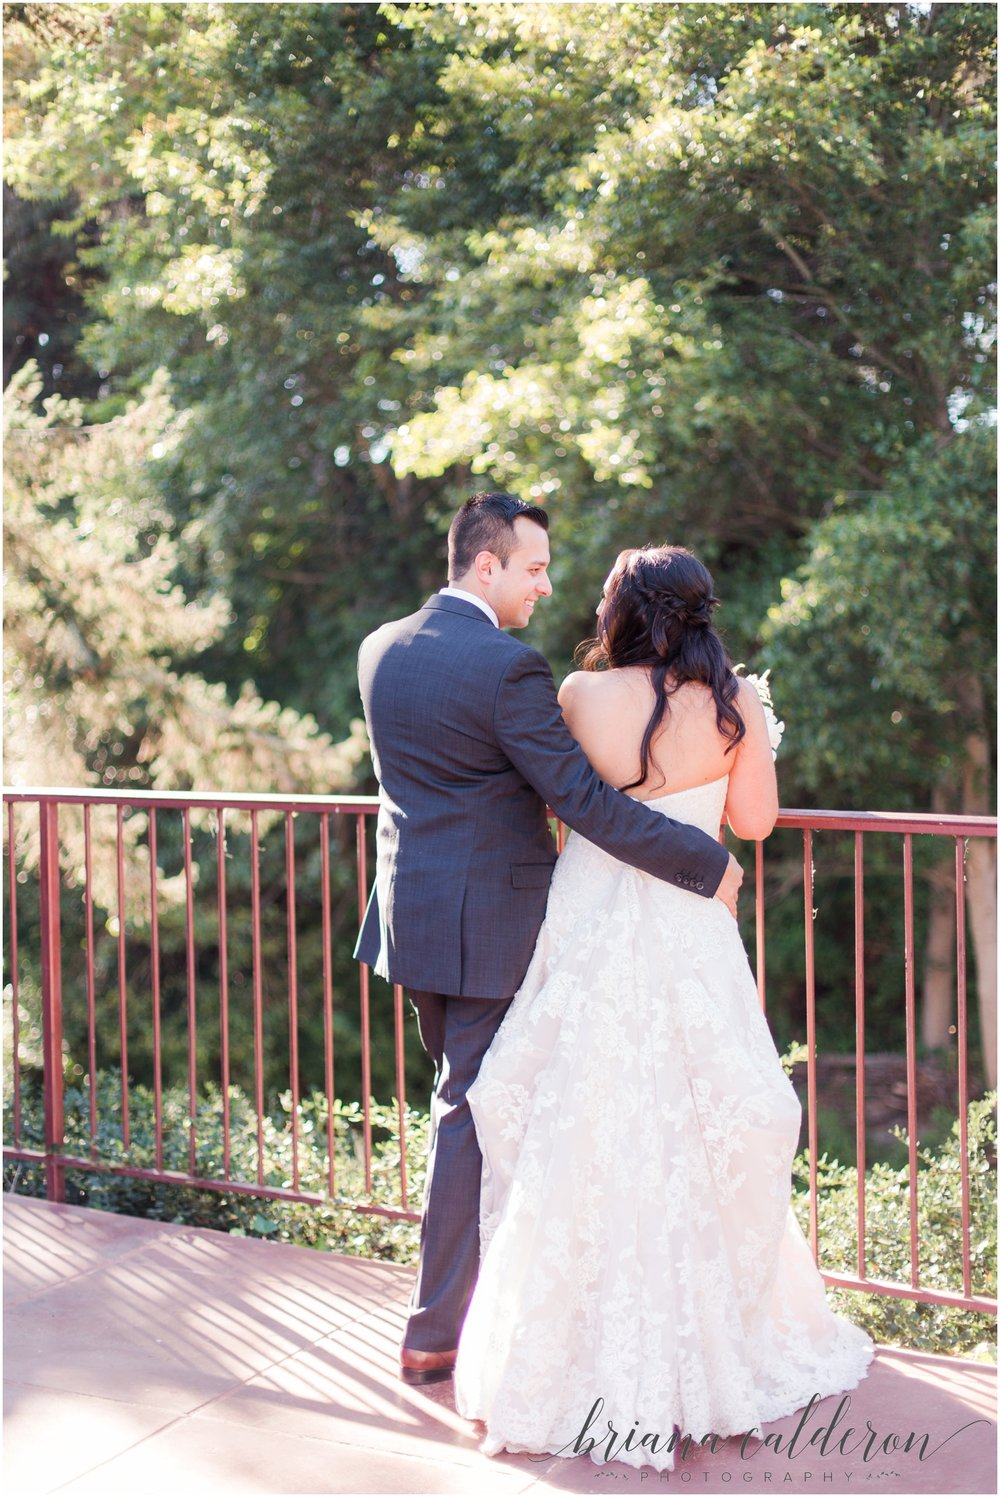 Bargetto Winery Wedding photos by Briana Calderon Photography_0938.jpg